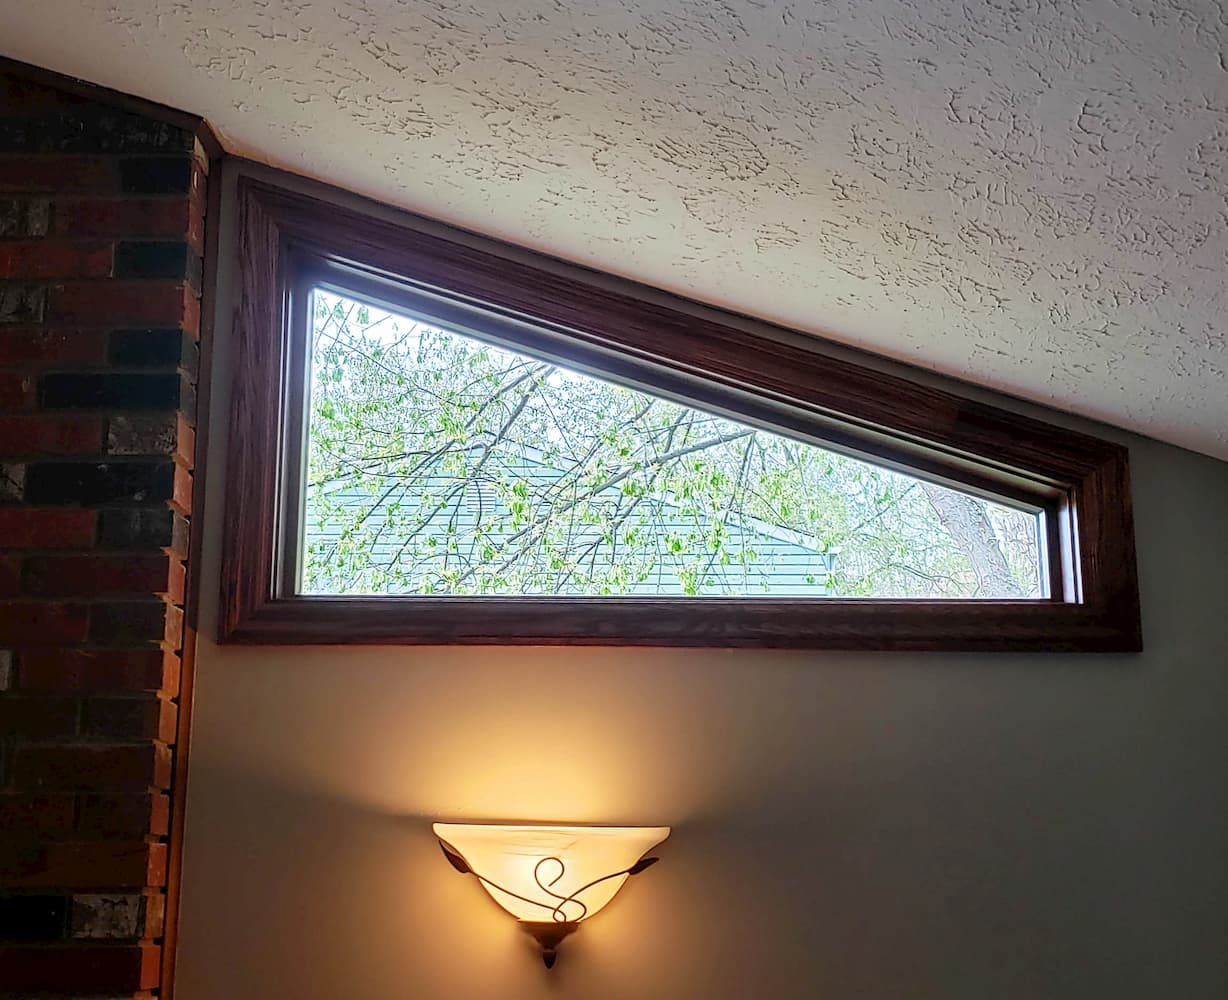 New special shape wood window lets light into room